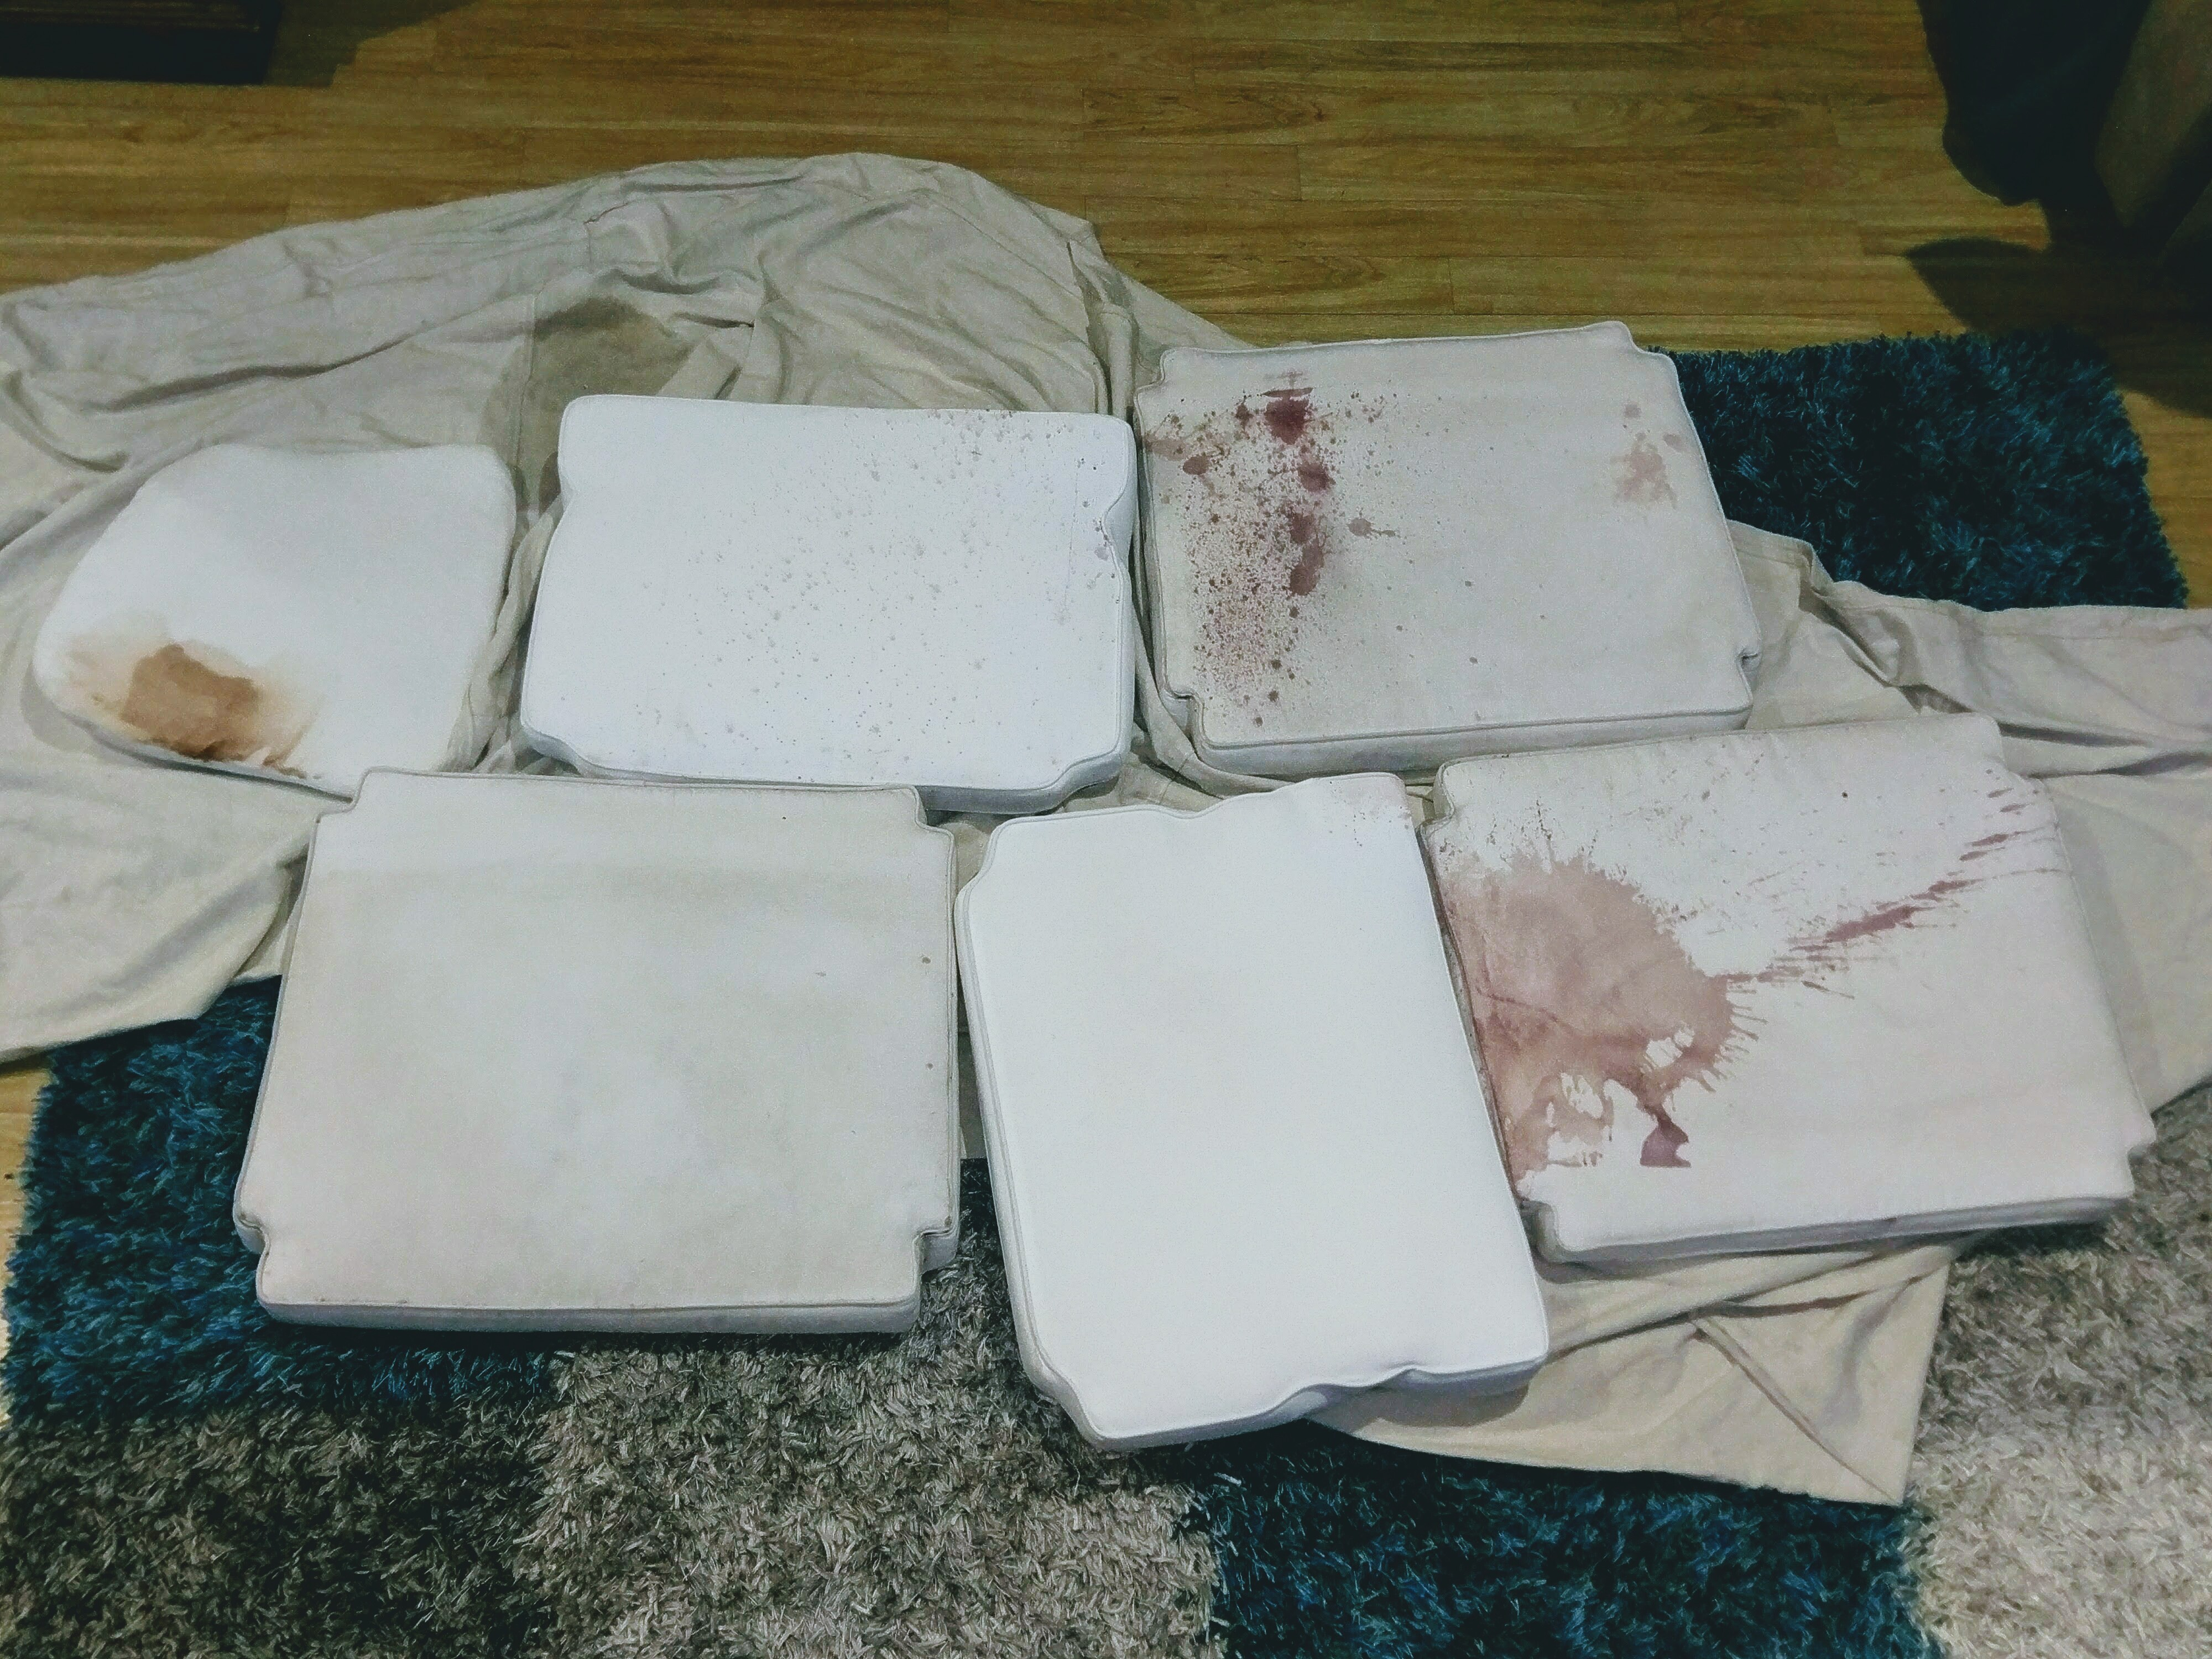 Red wine spill on white sofa